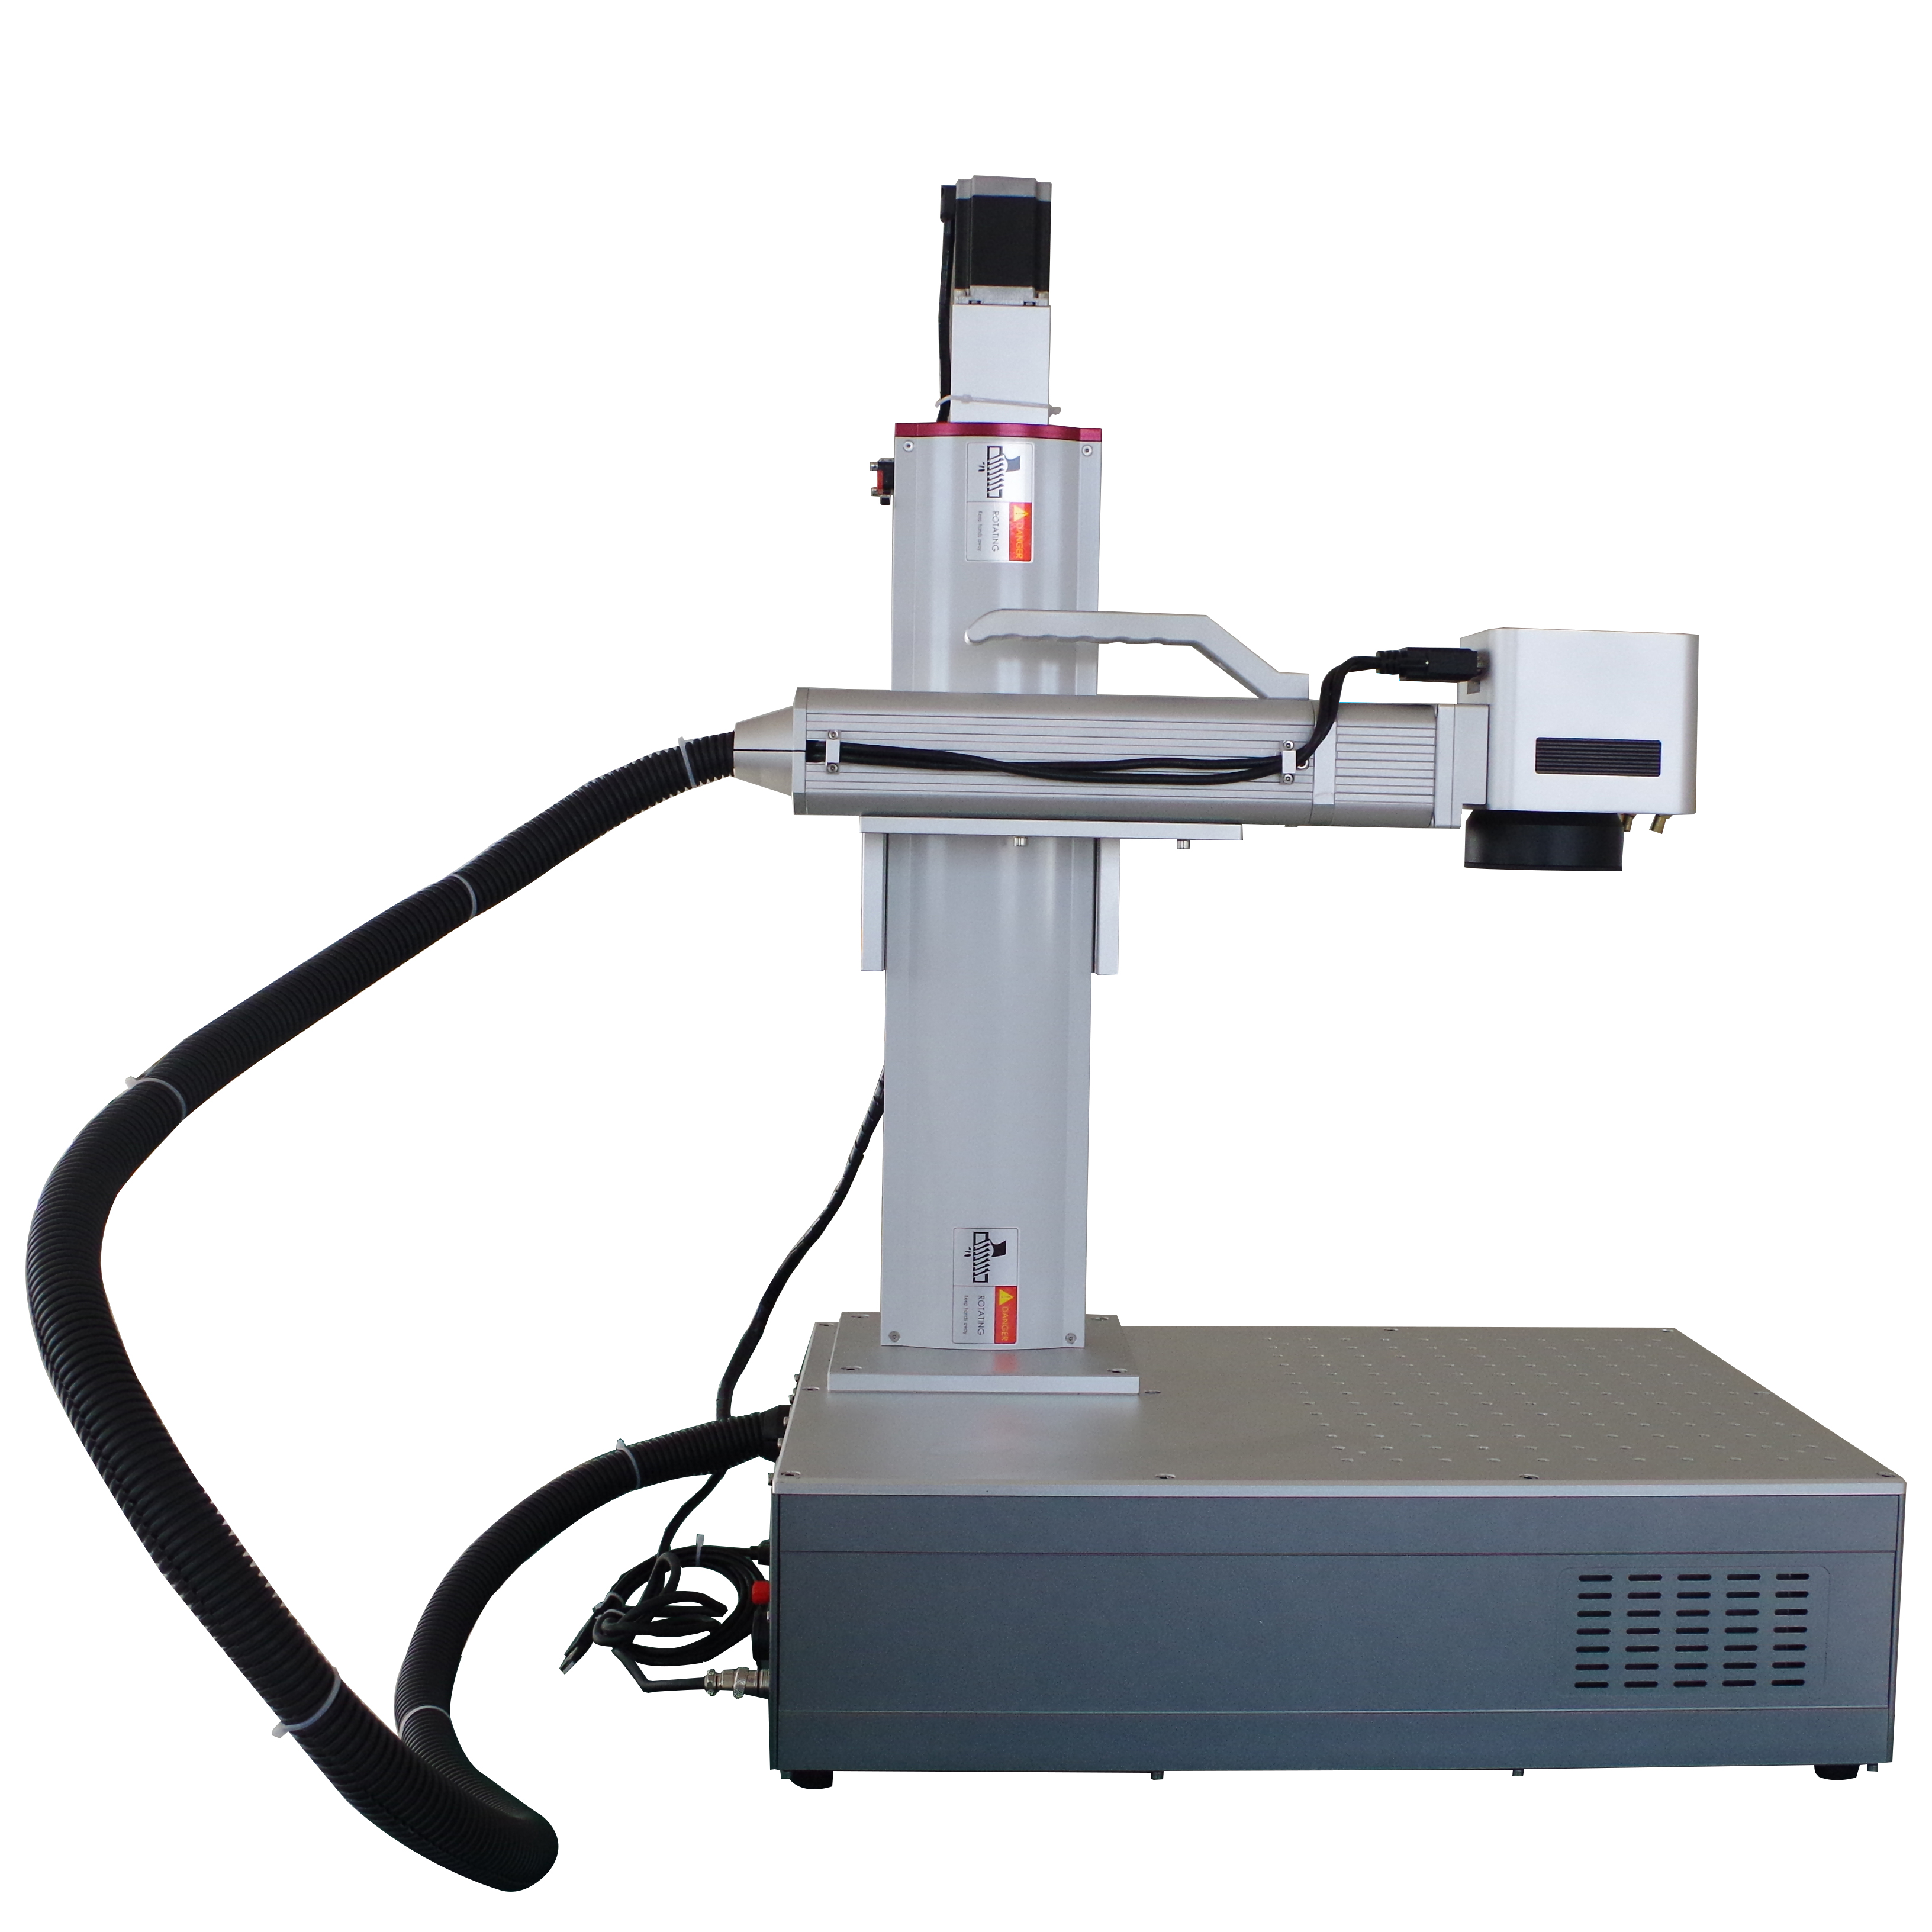 Motorized <strong>Z</strong> axis laser marking machine with 30w laser power